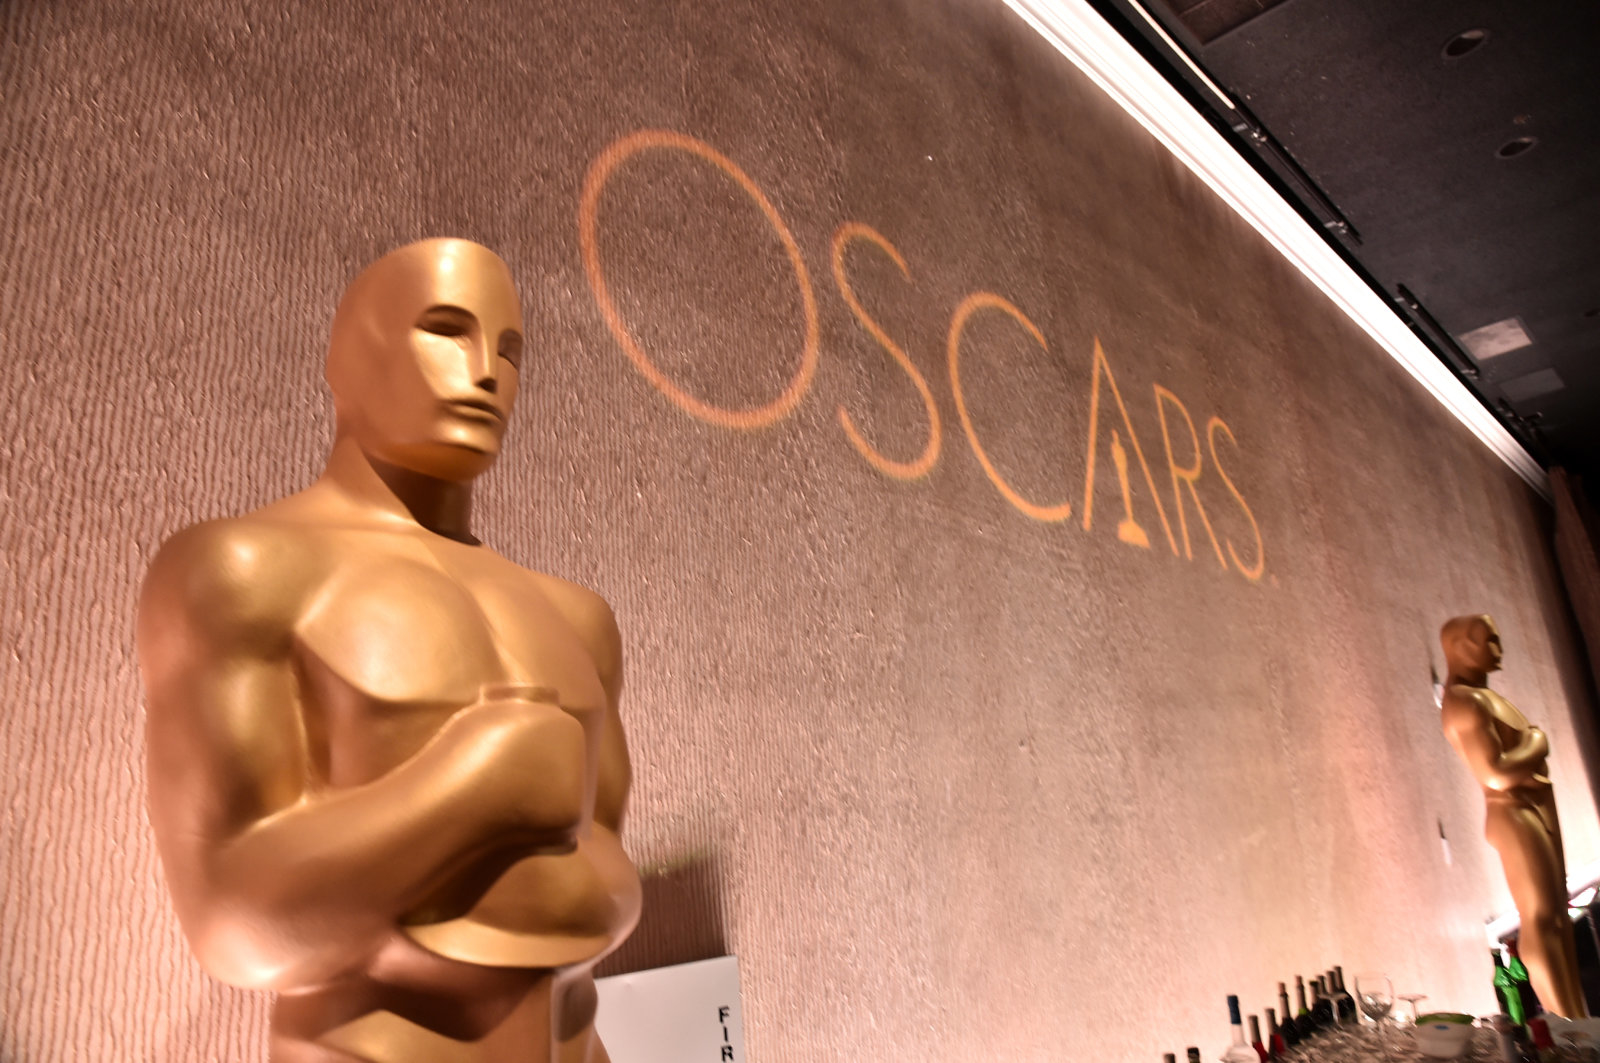 BEVERLY HILLS, CA - FEBRUARY 08:  A view of the Oscars logo at the 88th Annual Academy Awards nominee luncheon on February 8, 2016 in Beverly Hills, California.  (Photo by Alberto E. Rodriguez/Getty Images)